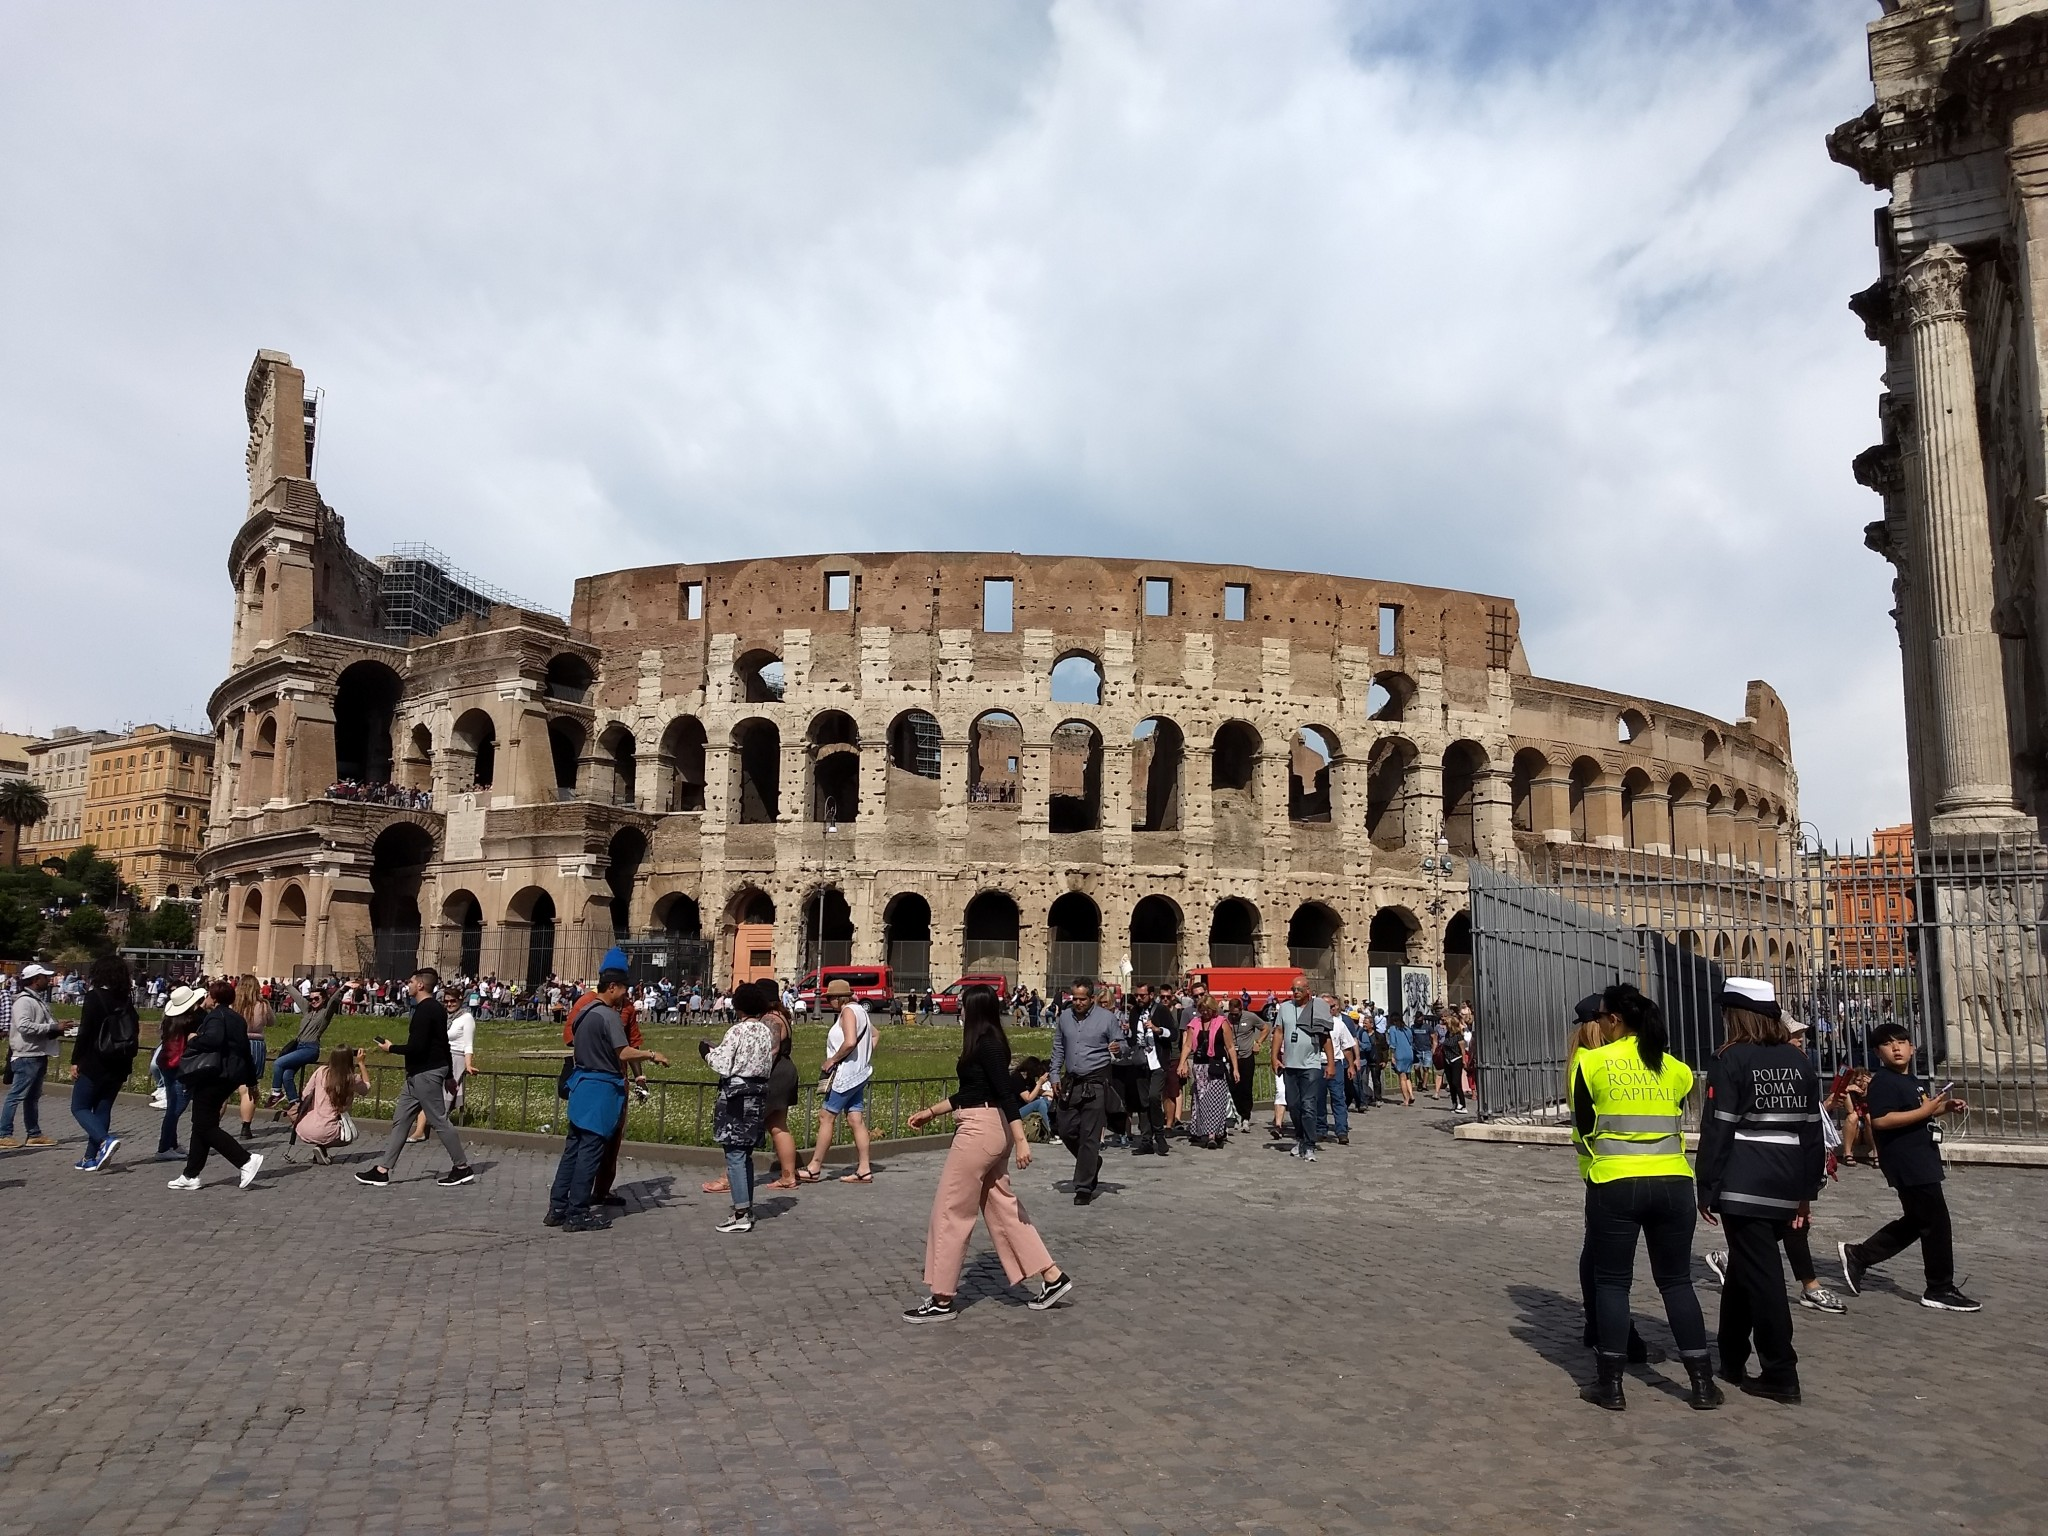 View of the Colosseum's exterior (Photo be Katie Siebenaller)